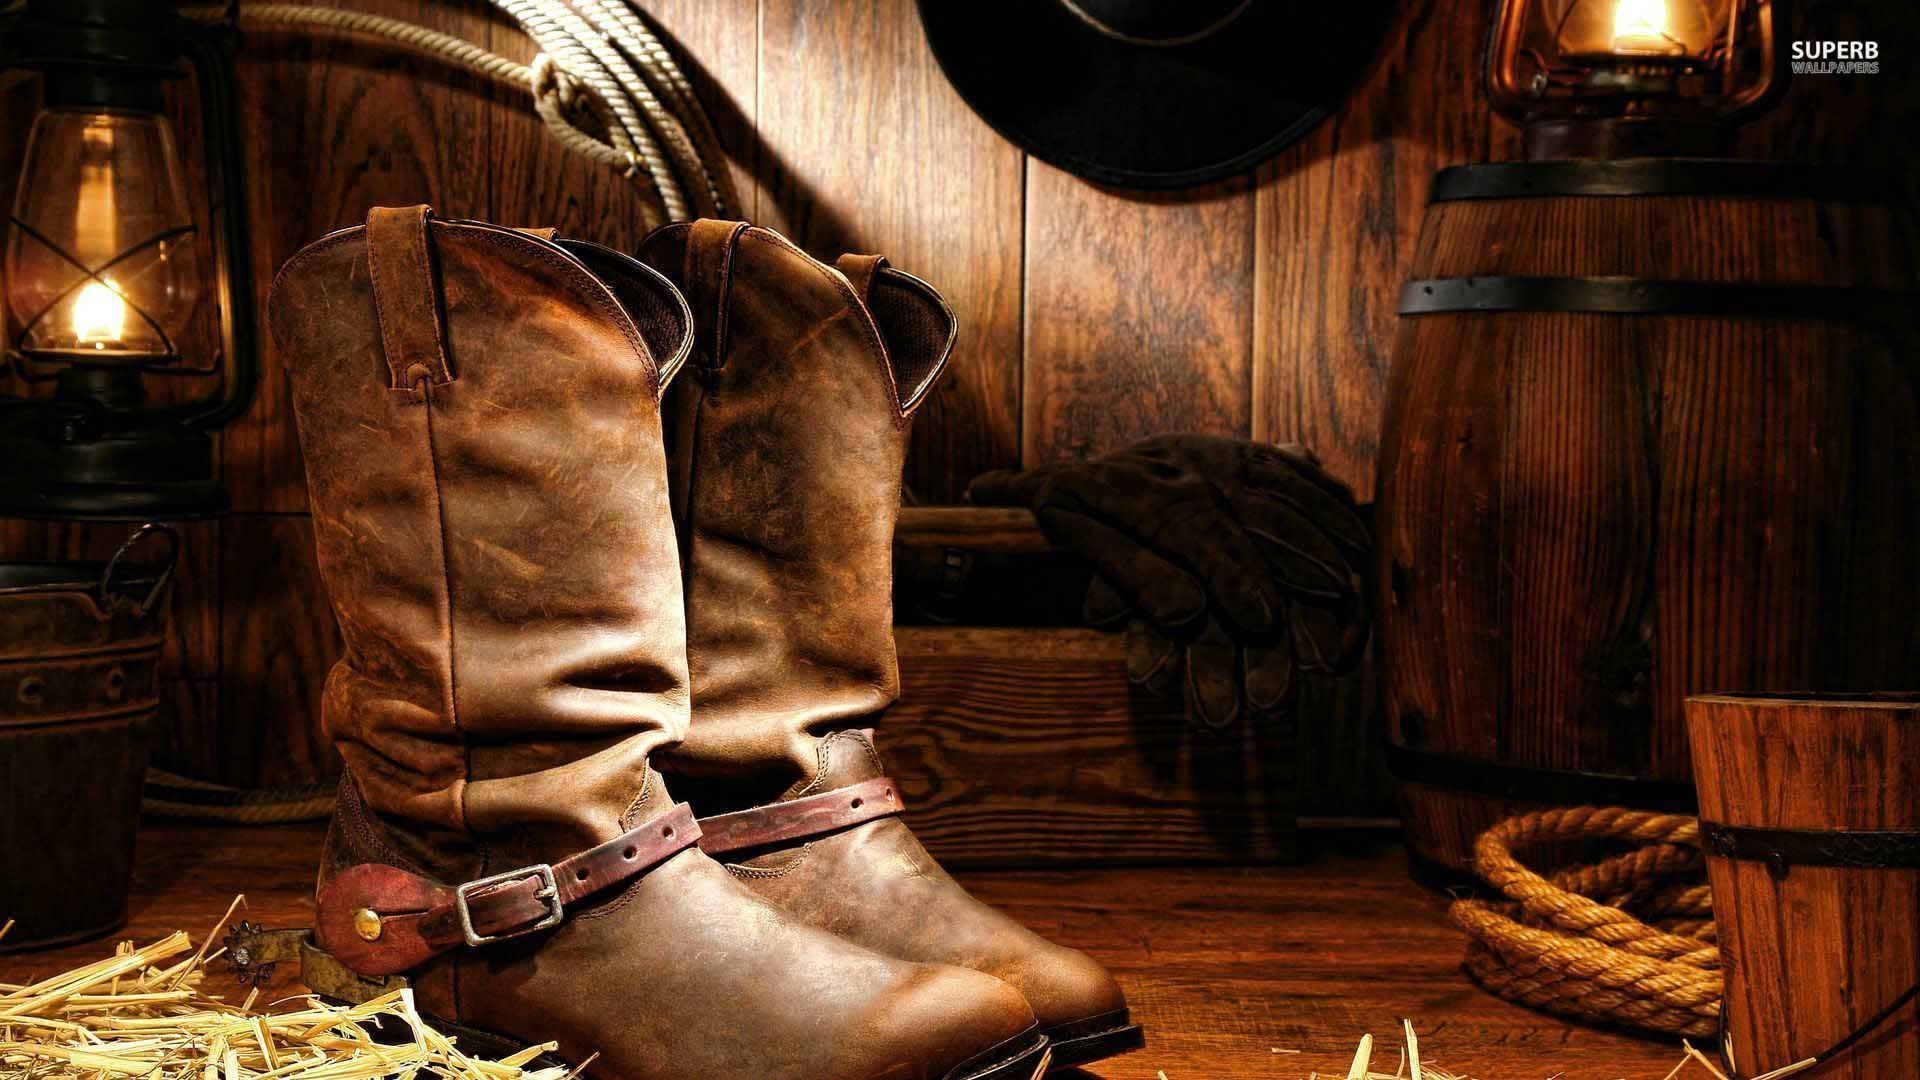 now a days Cowboy Boots changed into style icon. Description